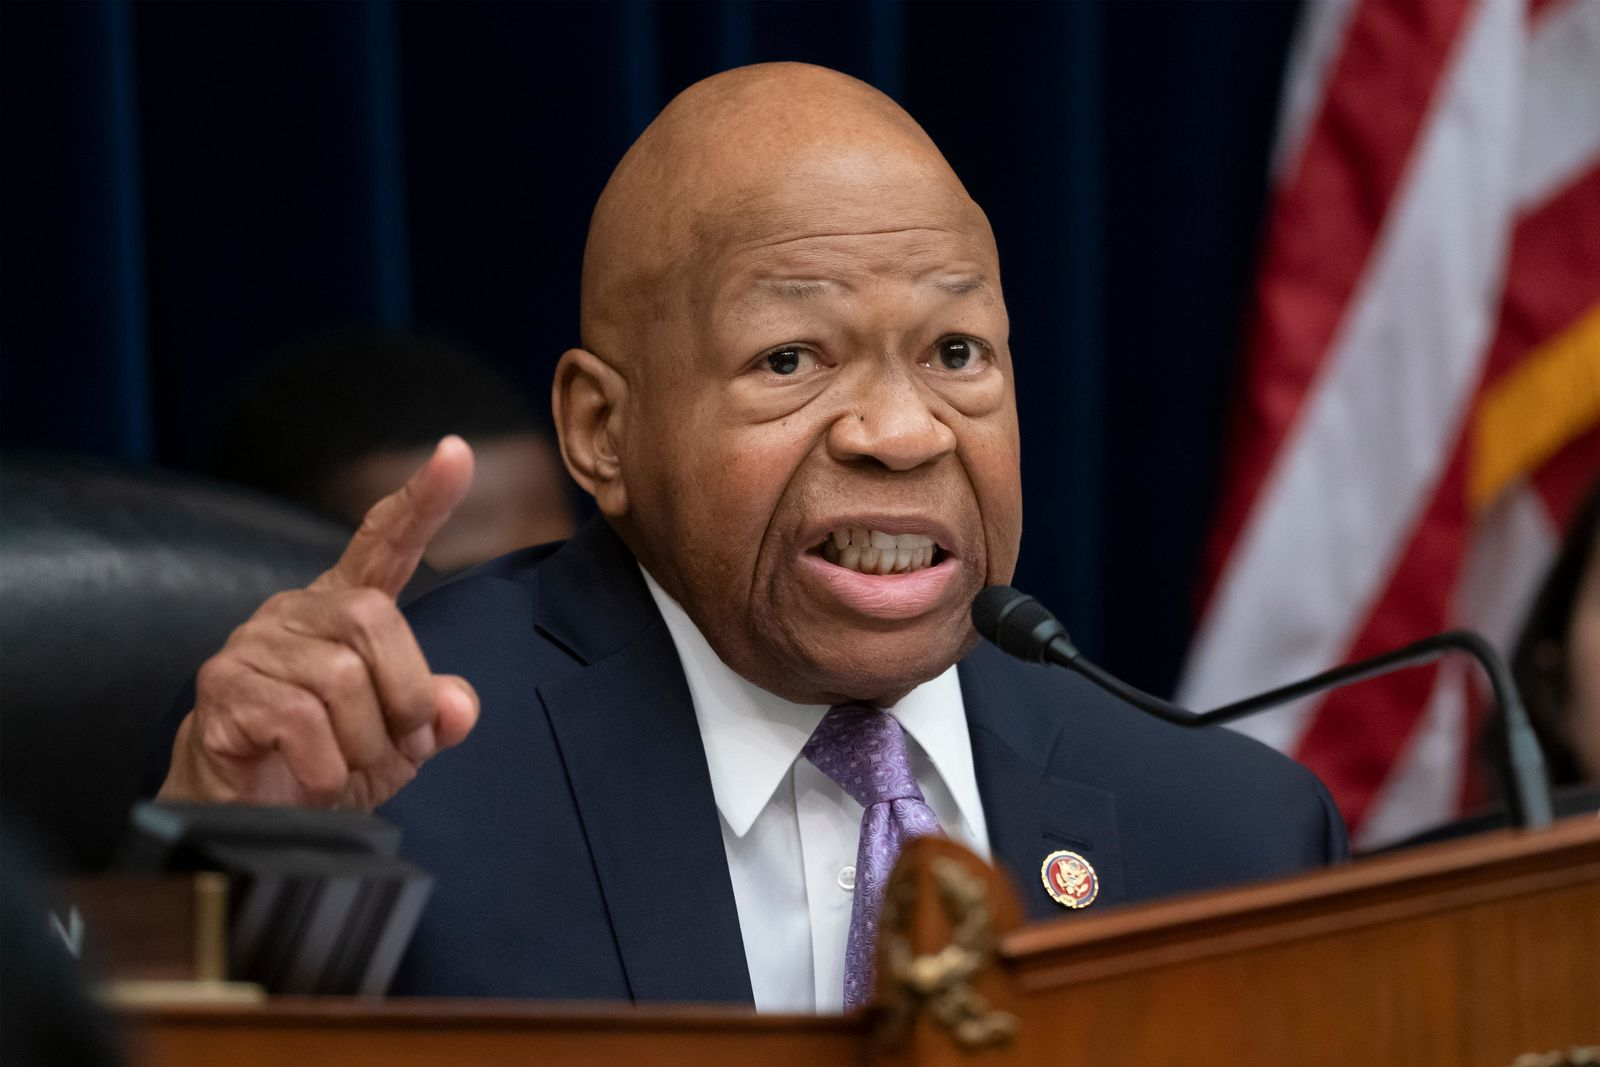 FILE - In this April 2, 2019, file photo, House Oversight and Reform Committee Chair Elijah Cummings, D-Md., speaks on Capitol Hill in Washington. (AP Photo/J. Scott Applewhite)